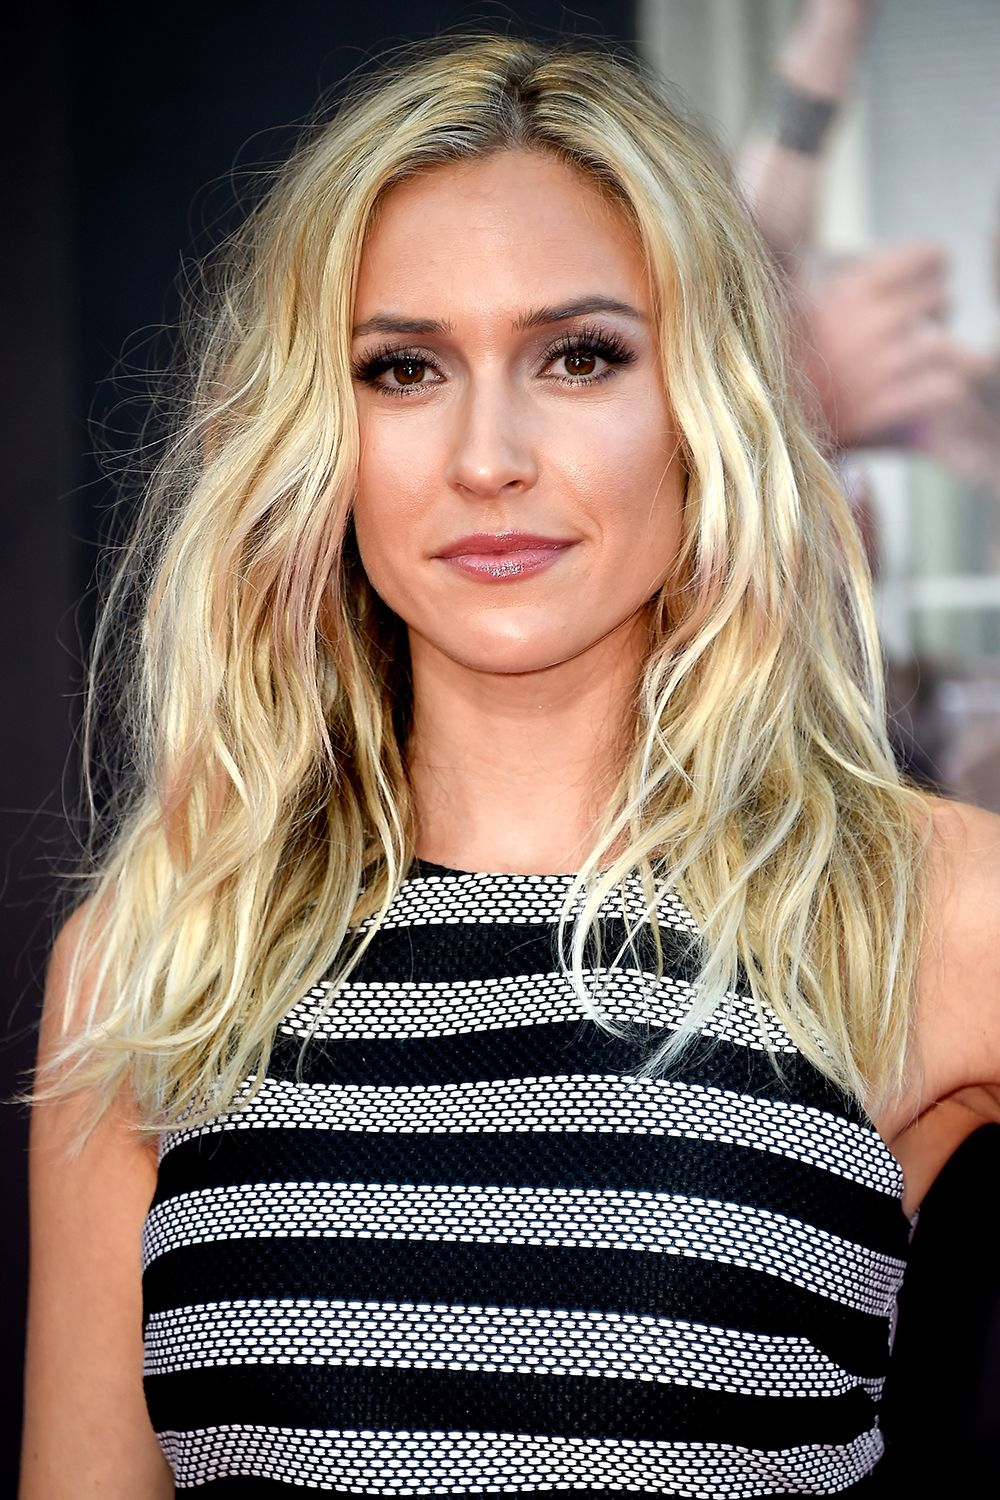 """<p><ual-wrapper>""""My goal is to never get Botox or any other filler or injectable, for that matter,"""" <a href=""""http://www.health.com/beauty/this-is-how-kristin-cavallari-plans-to-avoid-botox"""" target=""""_blank"""" data-tracking-id=""""recirc-text-link"""">she writes</a> in her book <em data-redactor-tag=""""em"""" data-verified=""""redactor"""">Balancing in Heels: My Journey to Health, Happiness, and Making It All Wor</em>k. """" </ual-wrapper><ual-wrapper>I don't hate on people who get Botox; I would just prefer to do everything a more natural way. We don't know the long-term effects of that stuff, and it doesn't seem right to me. We are supposed to age—that's part of life!""""</ual-wrapper></p>"""